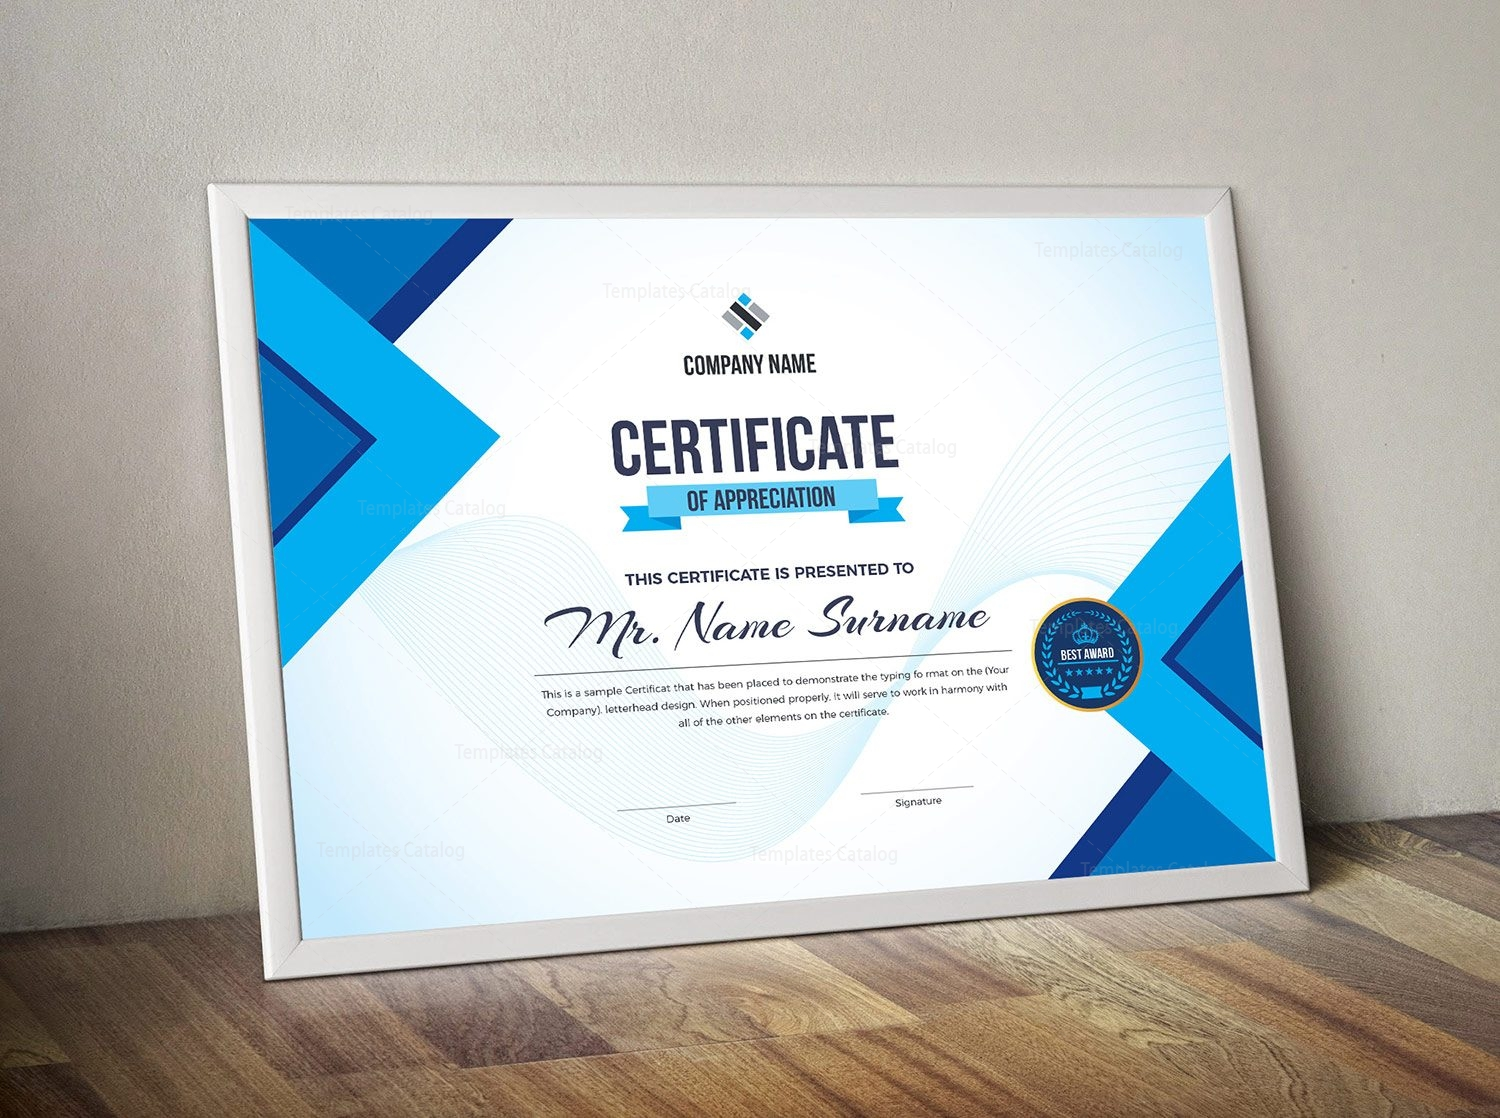 Editable Microsoft Certificate Templates Safety